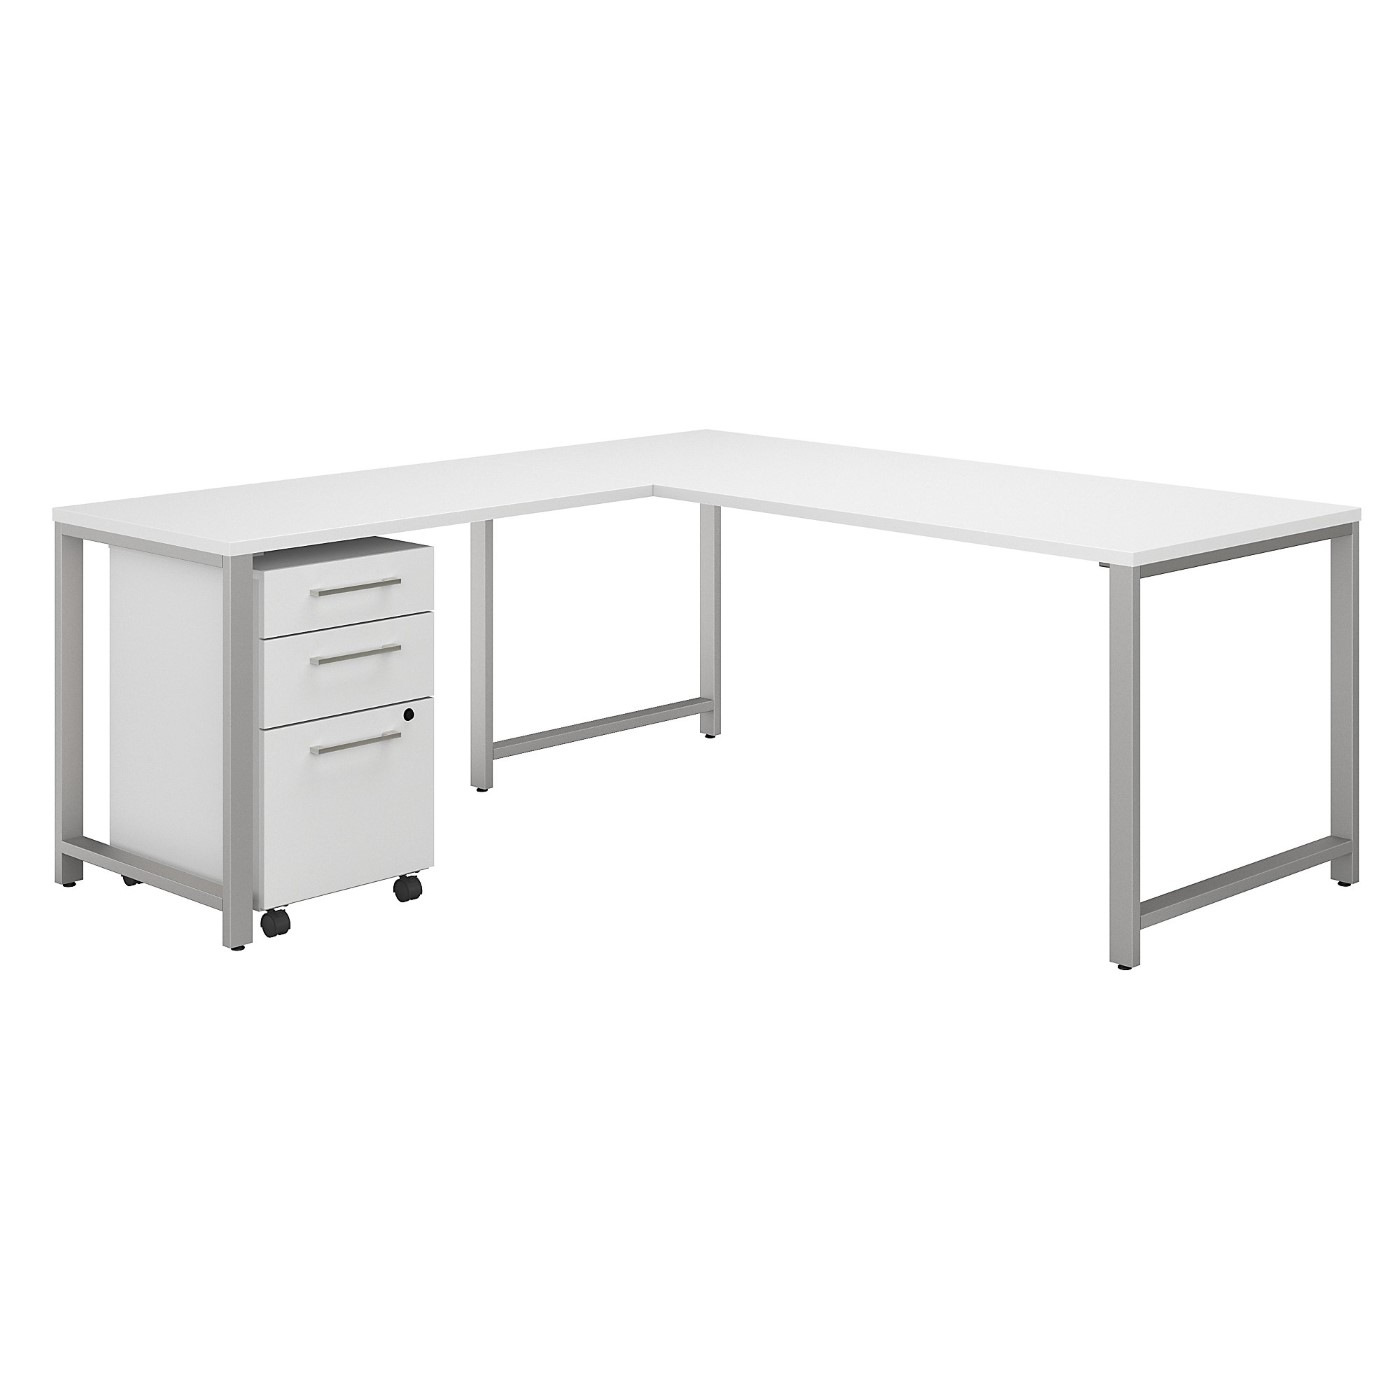 <font color=#c60><b>BUSH BUSINESS FURNITURE 400 SERIES 72W L SHAPED DESK WITH 48W RETURN AND 3 DRAWER MOBILE FILE CABINET. FREE SHIPPING|TAA COMPLIANT|AMERICAN MADE 30H x 72L x 72W</font></b>